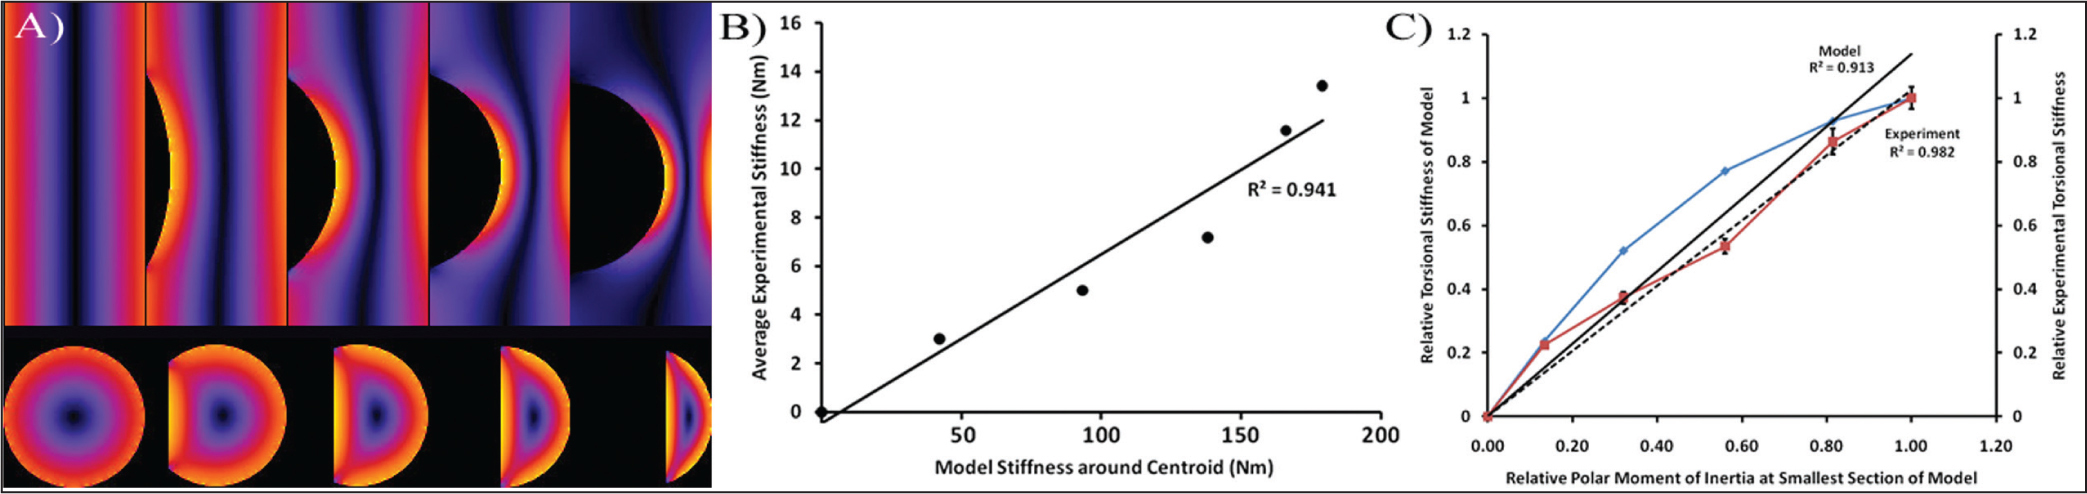 von Mises shear stress in each finite element model at 10° of rotation. The solution was linear, using 8 node trilinear brick elements. The samples are, from right to left, 67% cortical width defect, 50% cortical width defect, 33% cortical width defect, 17% cortical width defect, and intact (A). Linear correlation of the experimental femur torsional stiffness to the predicted torsional stiffness of the undamaged cross-section of the cylinder (B). Linear correlation of the normalized torsional stiffness of the finite element model (left) and the experimental femurs (right) to the torsional (ie, polar) moment of inertia relative to the polar moment of the undamaged cross-section of the cylinder (C).